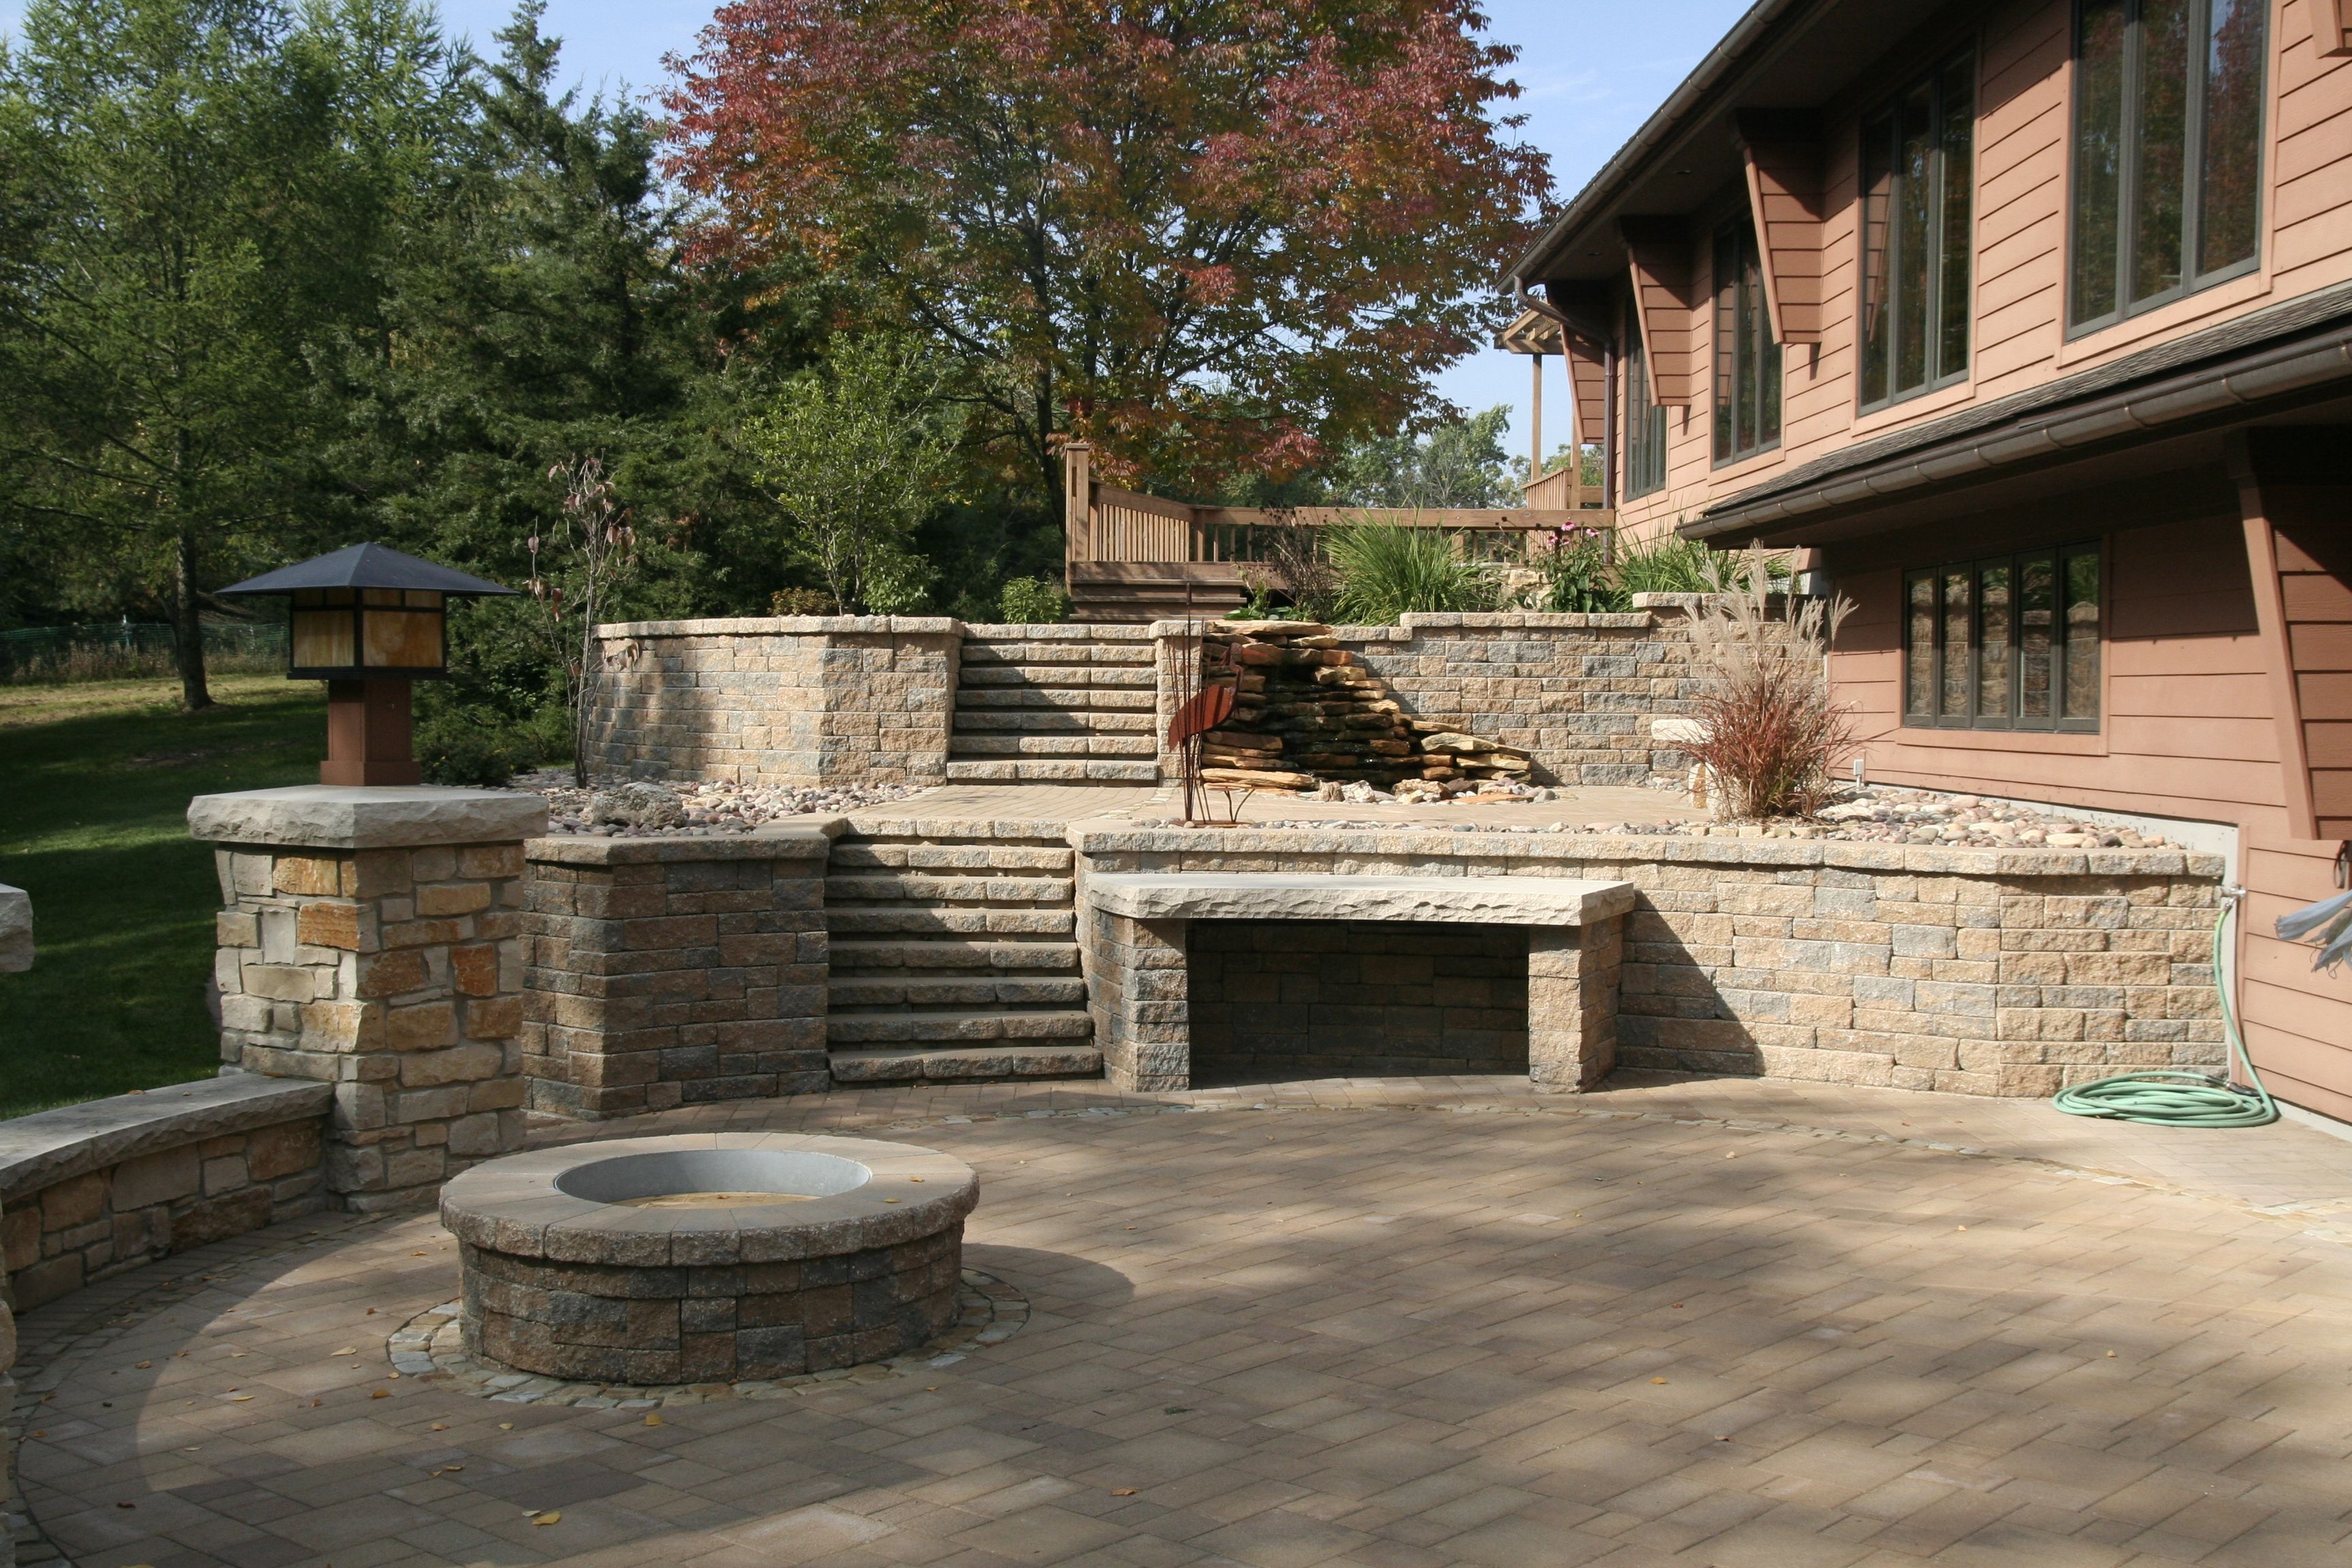 Awesome Unilock Pavers For Your Outdoor Patio Ideas ... on Unilock Patio Ideas id=46062